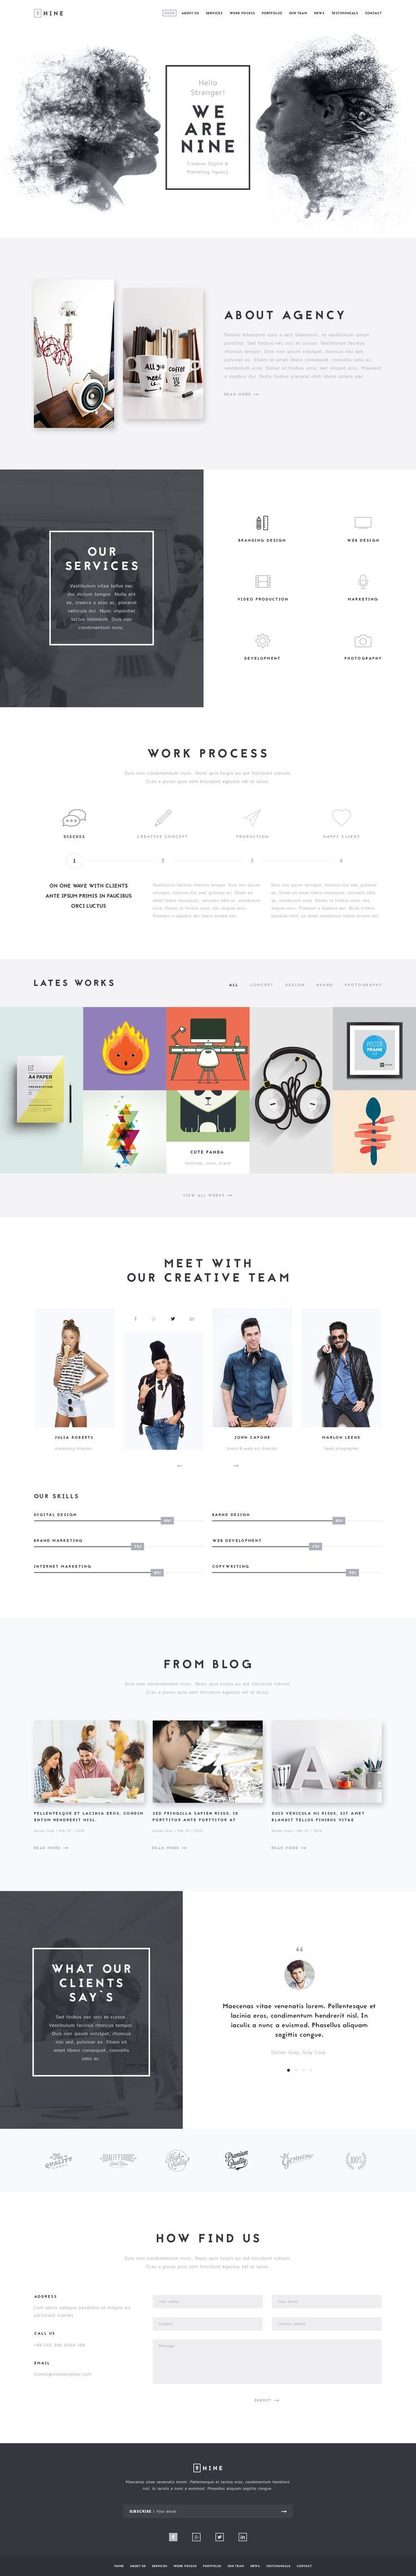 12 Best Simple WordPress Themes of 2015